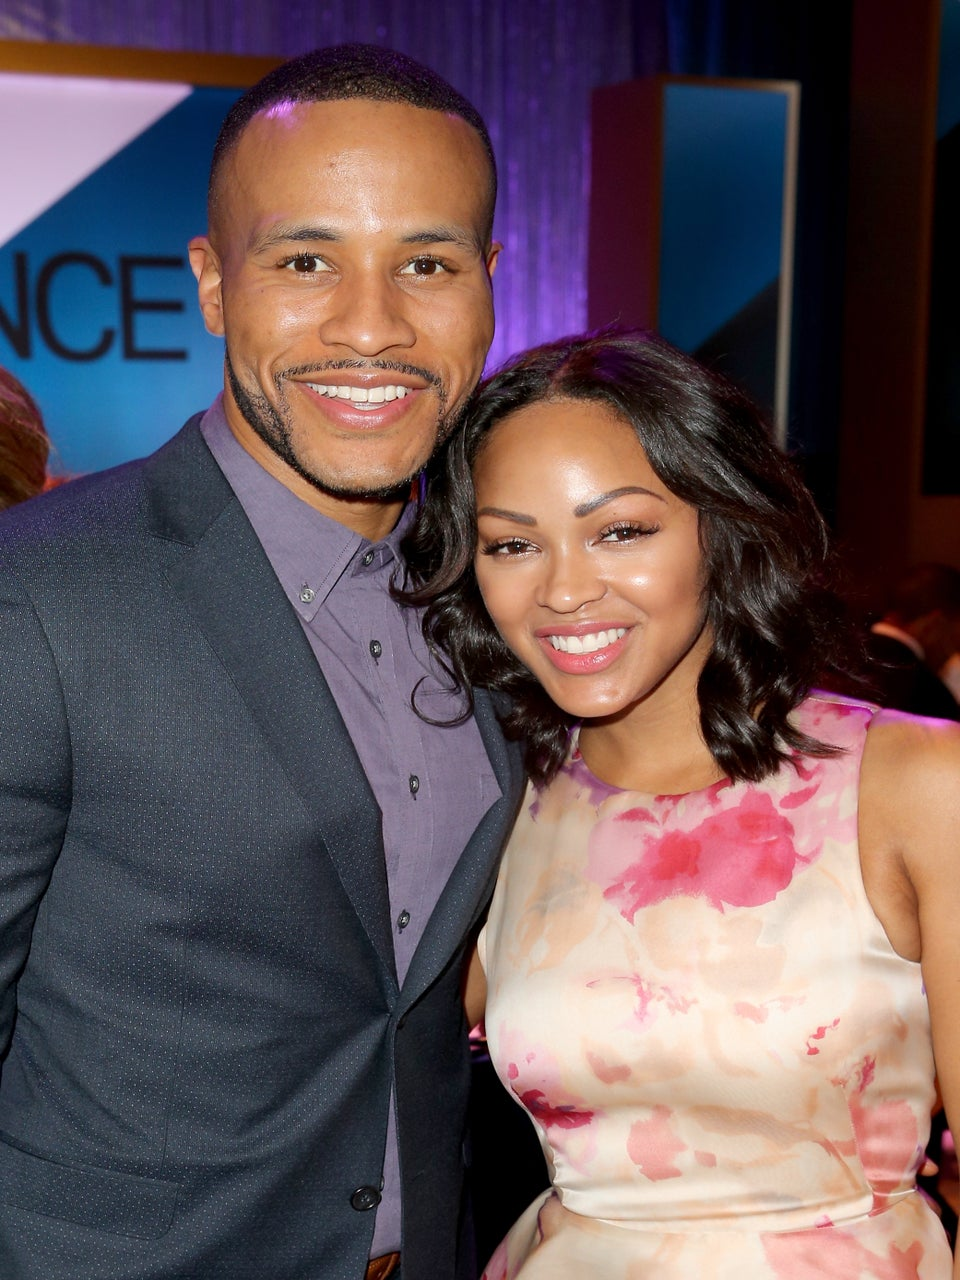 DeVon Franklin Helped Meagan Good Face Her Biggest Fear In Honor Of Their Anniversary